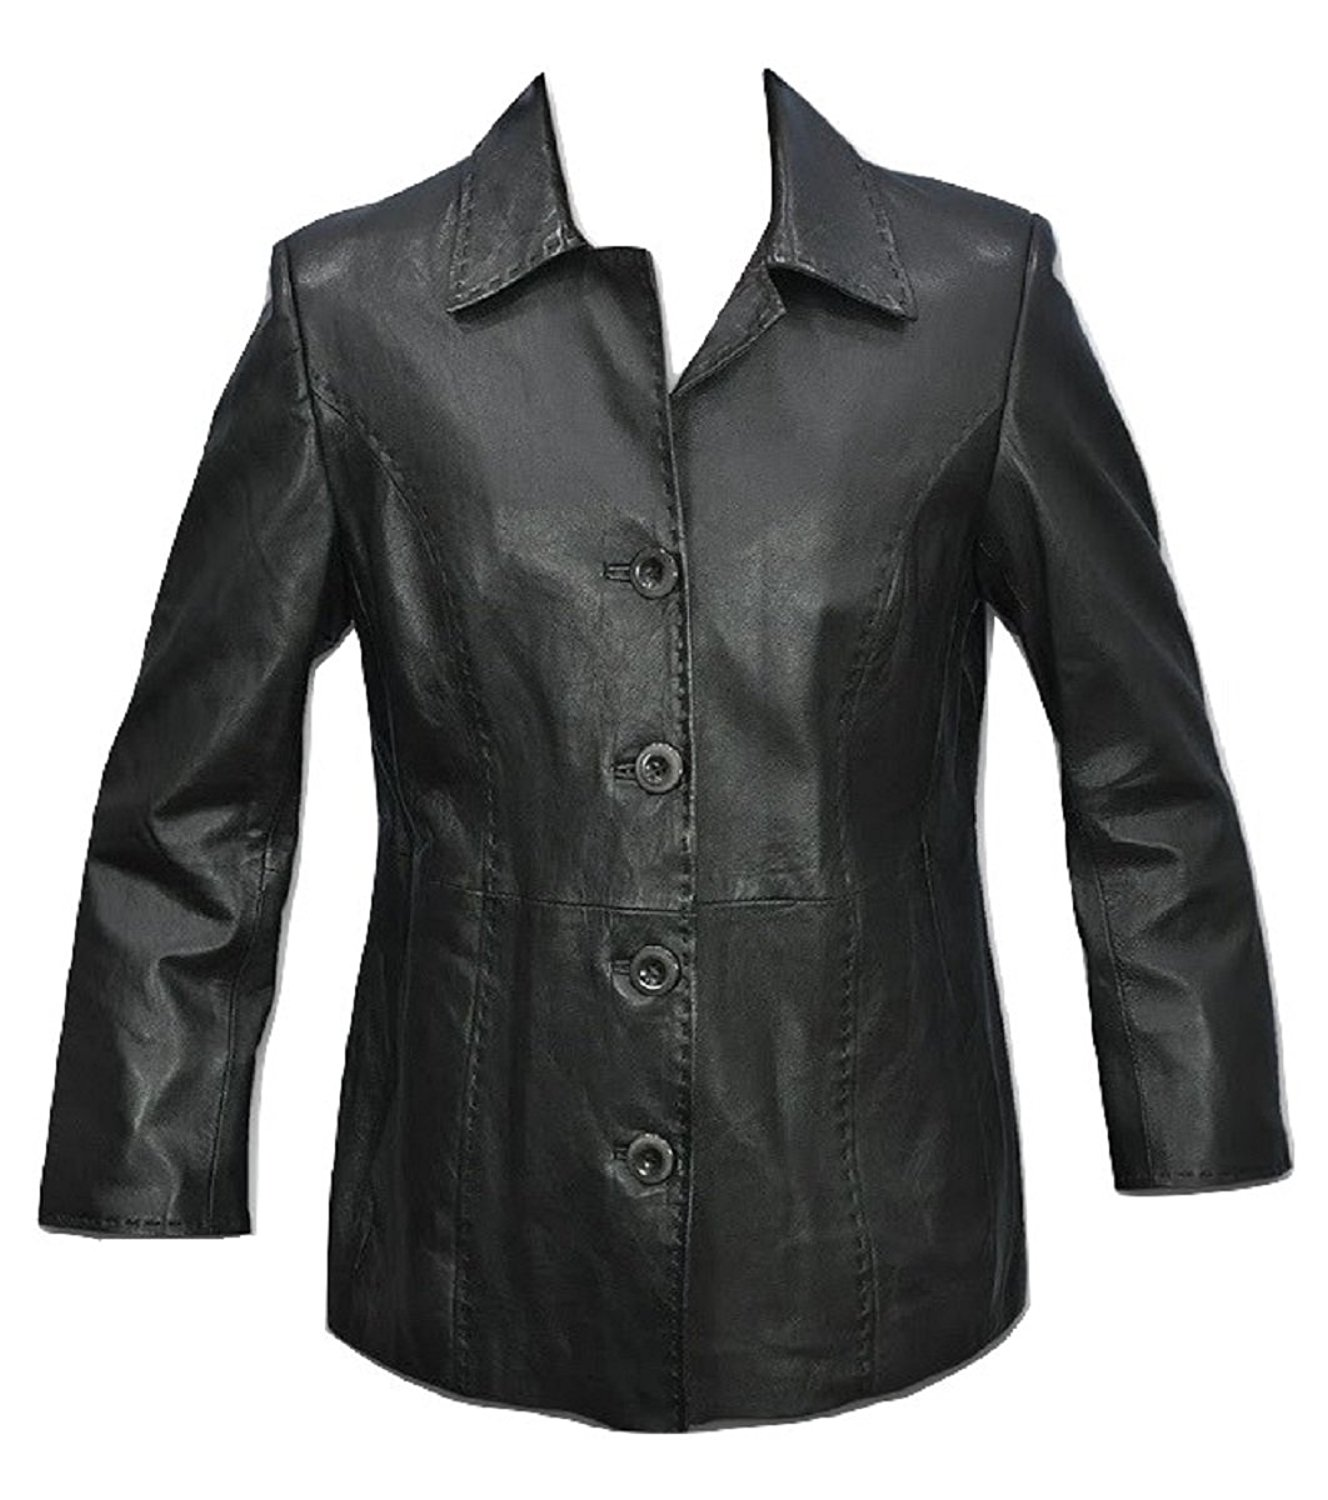 Bestzo Women's Fashion Jacket Lamb Leather Black XXL